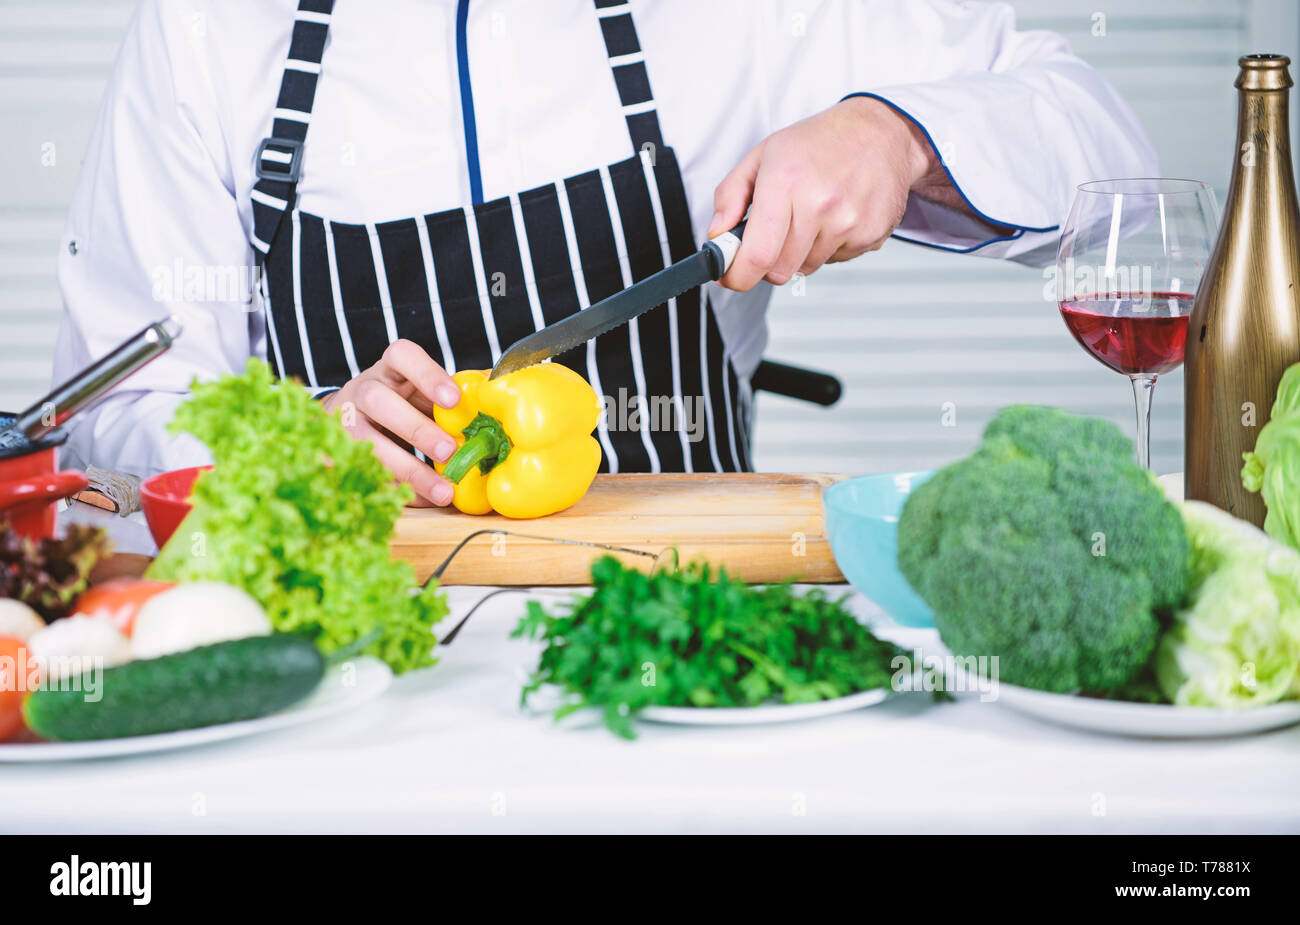 Prepare ingredients for cooking. Useful for significant amount of cooking methods. Basic cooking processes. Man master chef or amateur cooking healthy food. Chop ingredients. According to recipe. - Stock Image